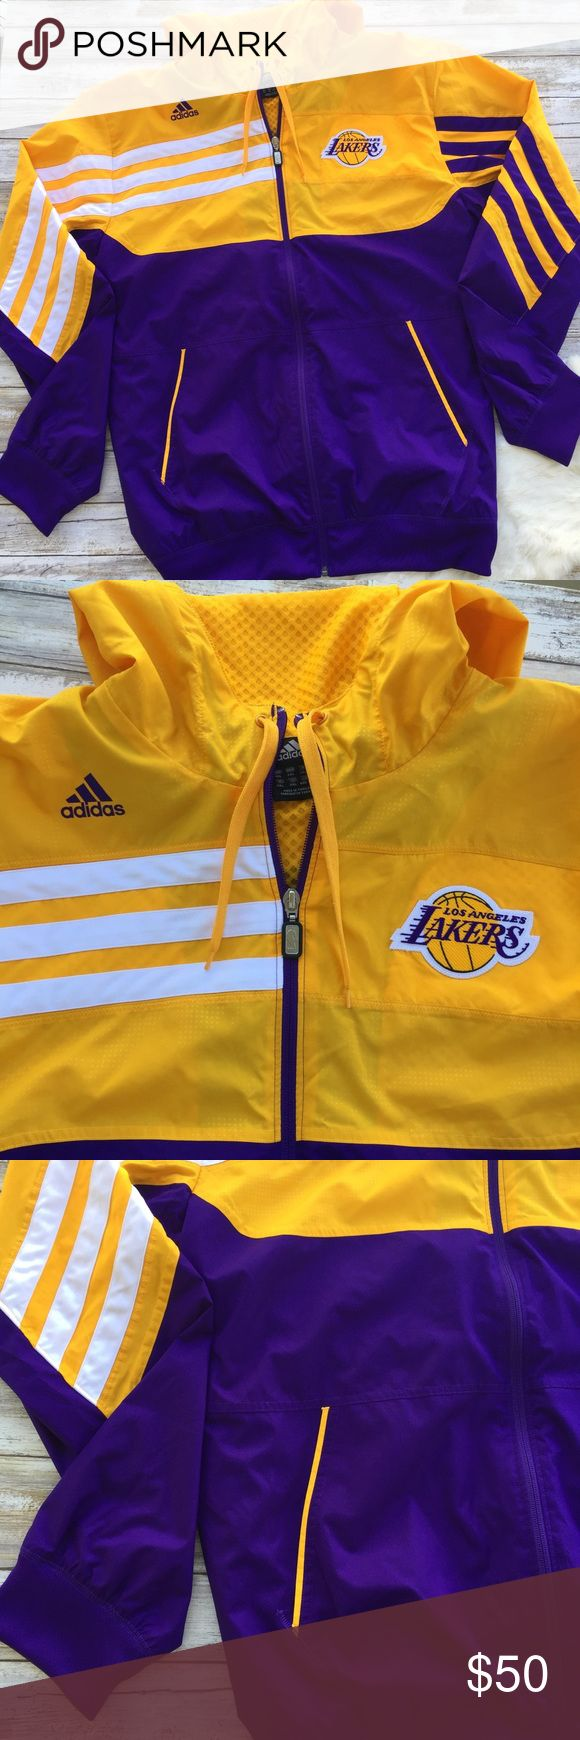 """Adidas L.A. Lakers Windbreaker Lined Windbreaker from Adidas. NBA Los Angels Lakers. Size 2XL. 26""""chest 29.5"""" sleeves32"""" length.  •I don't swap/trade •I don't do holds  •I rarely model due to the fact that I don't fit all items.  •I price with shipping in mind  •I am open to reasonable negotiations  •Bundle for the best deals  ☮   ❤️   😊 adidas Jackets & Coats Windbreakers"""